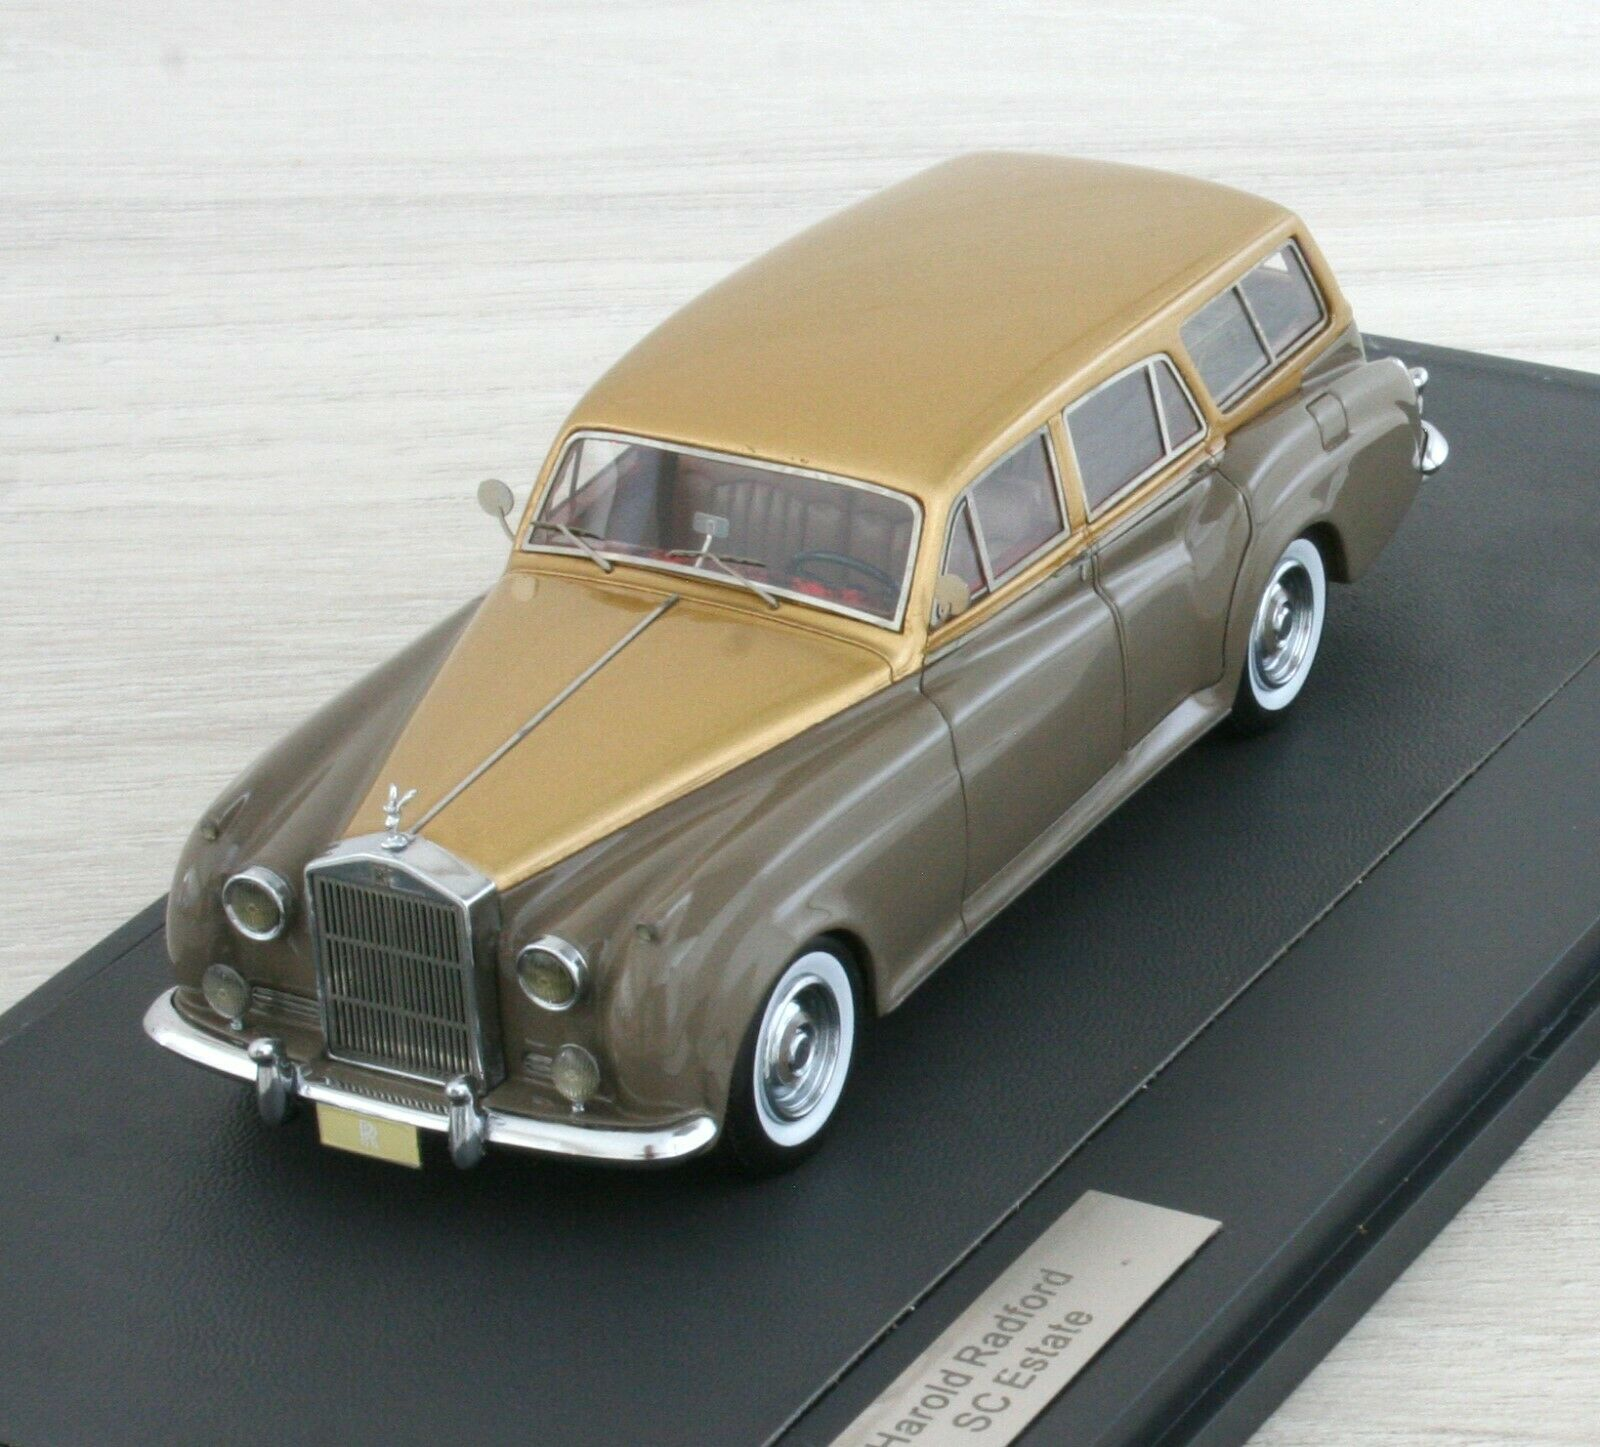 ROLLS ROYCE Harold Radford SC Estate 1959 - MATRIX MX 11705-072 - 1 43